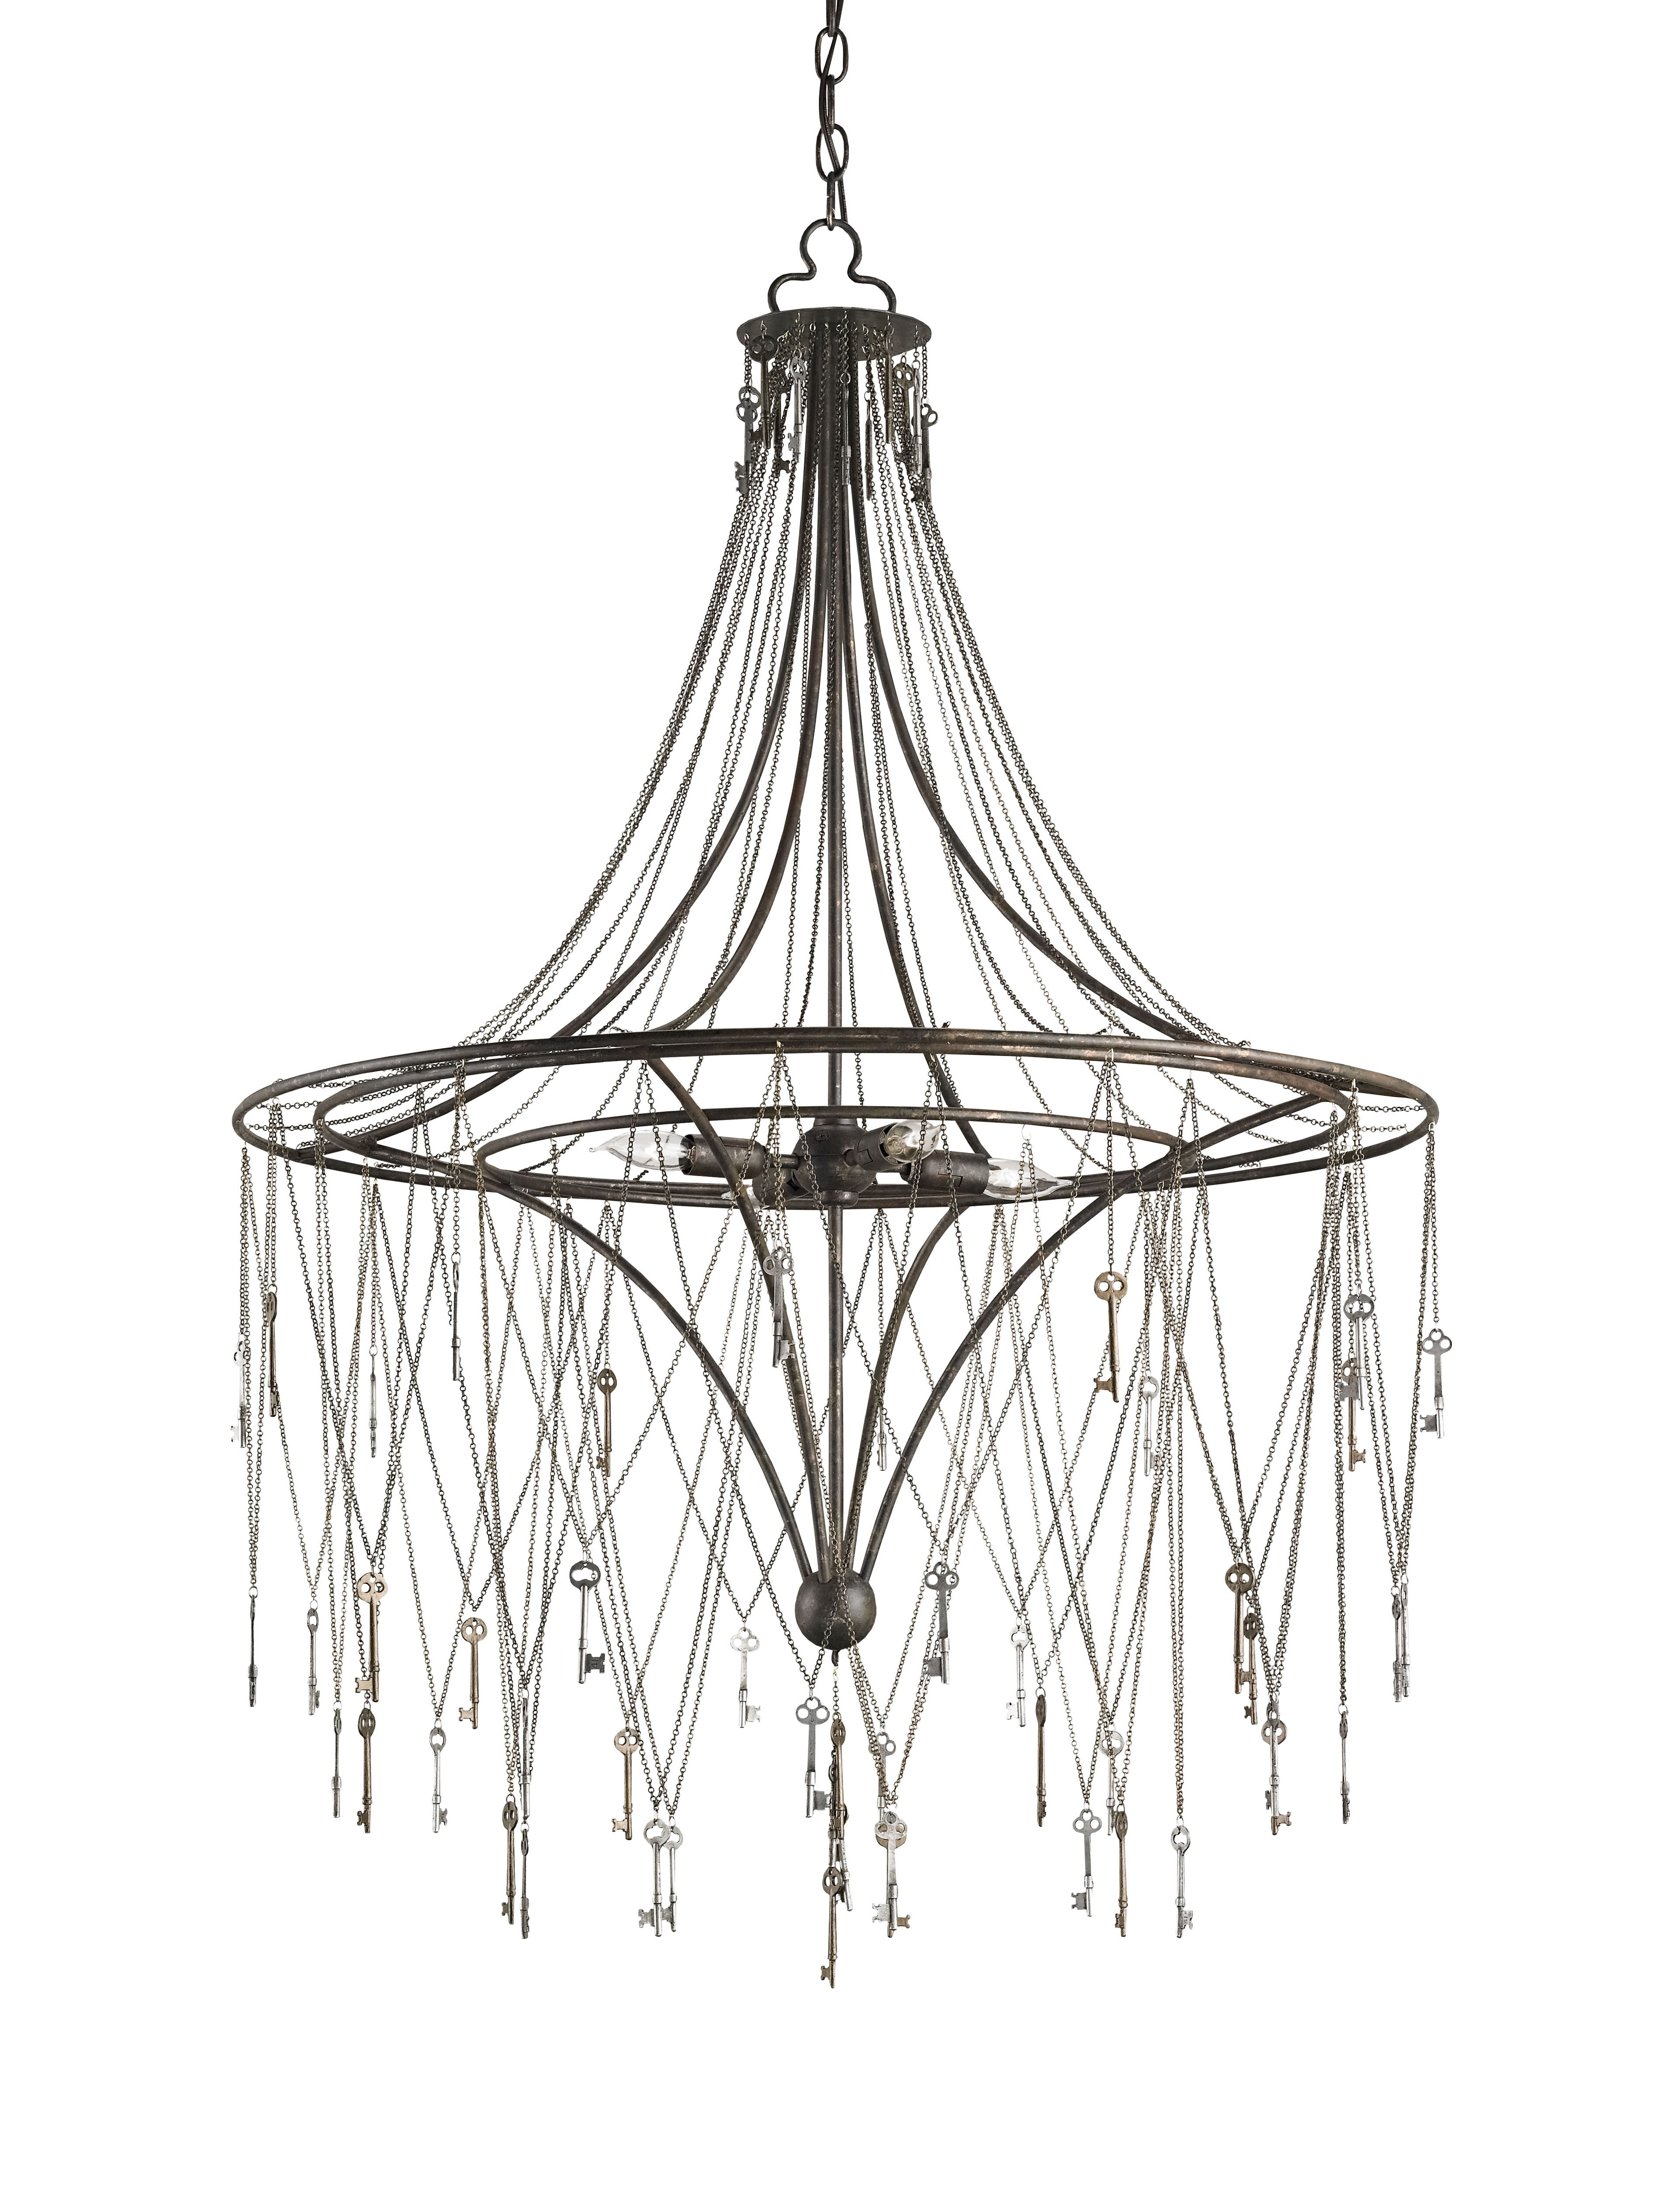 New - Currey & Company Chiave Chandelier